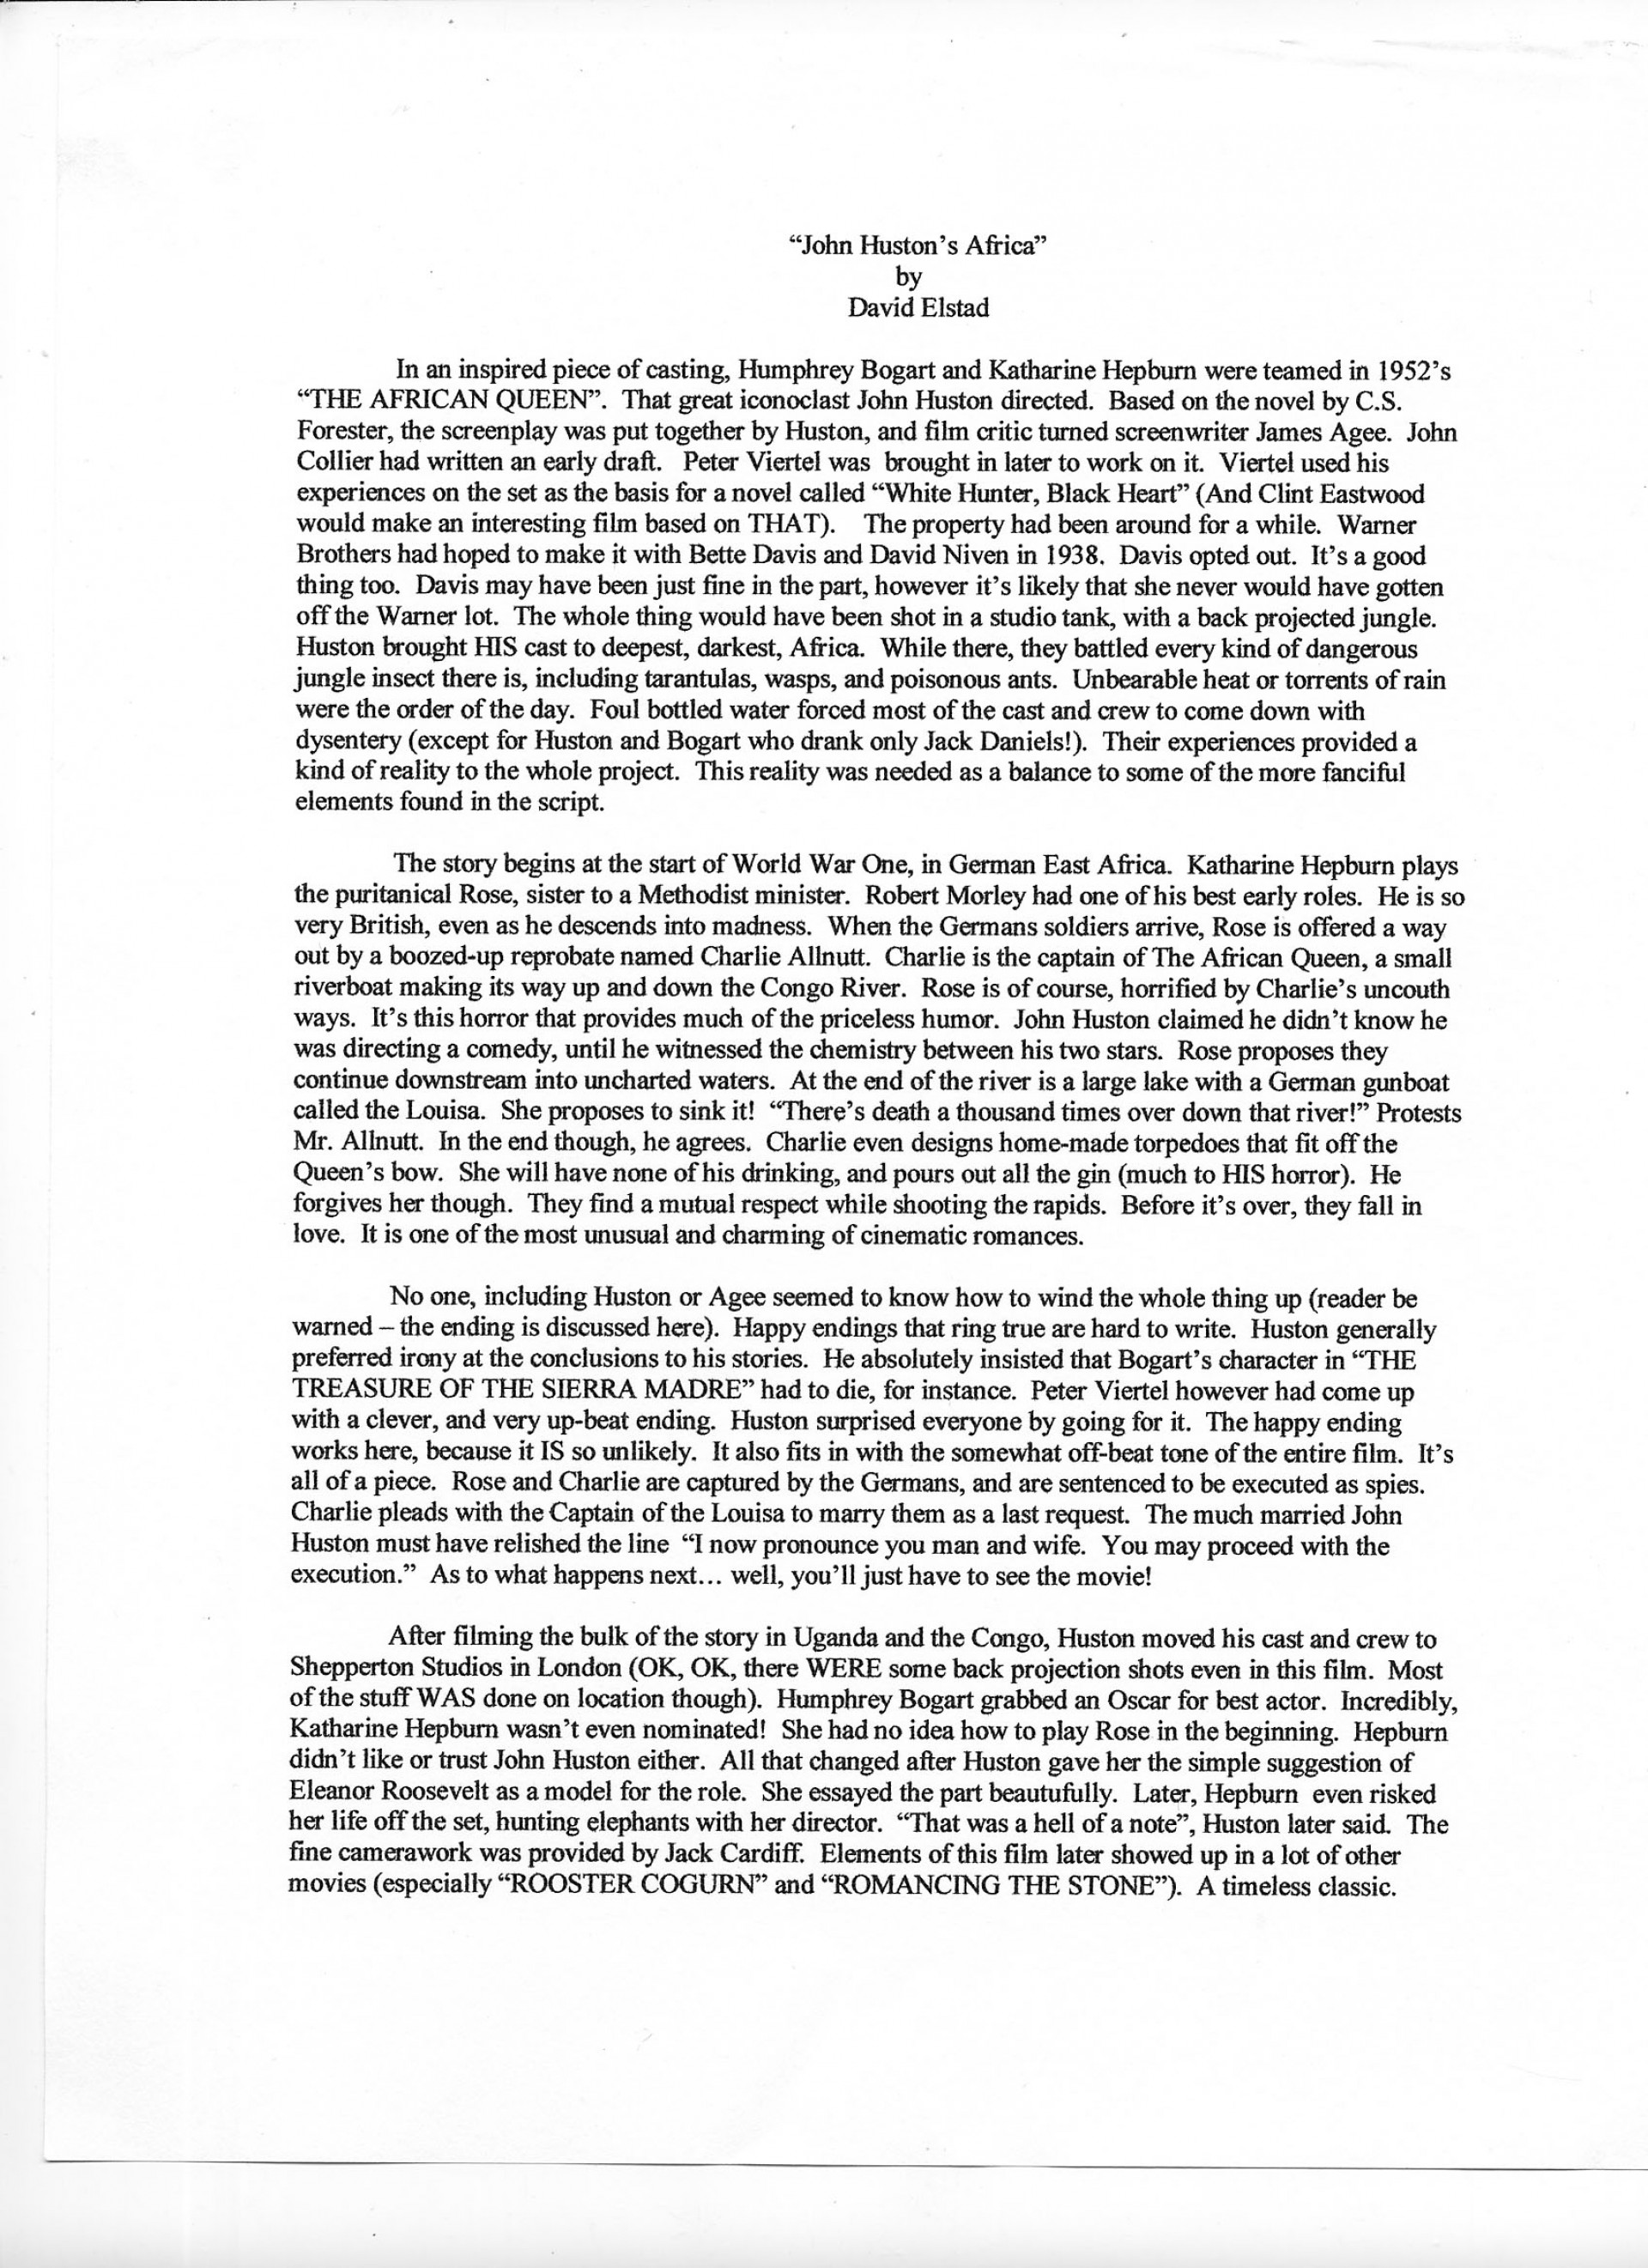 011 Page Essay Example On Terrorism Fearsome 3 Gun Control Double Spaced Word Count 1920